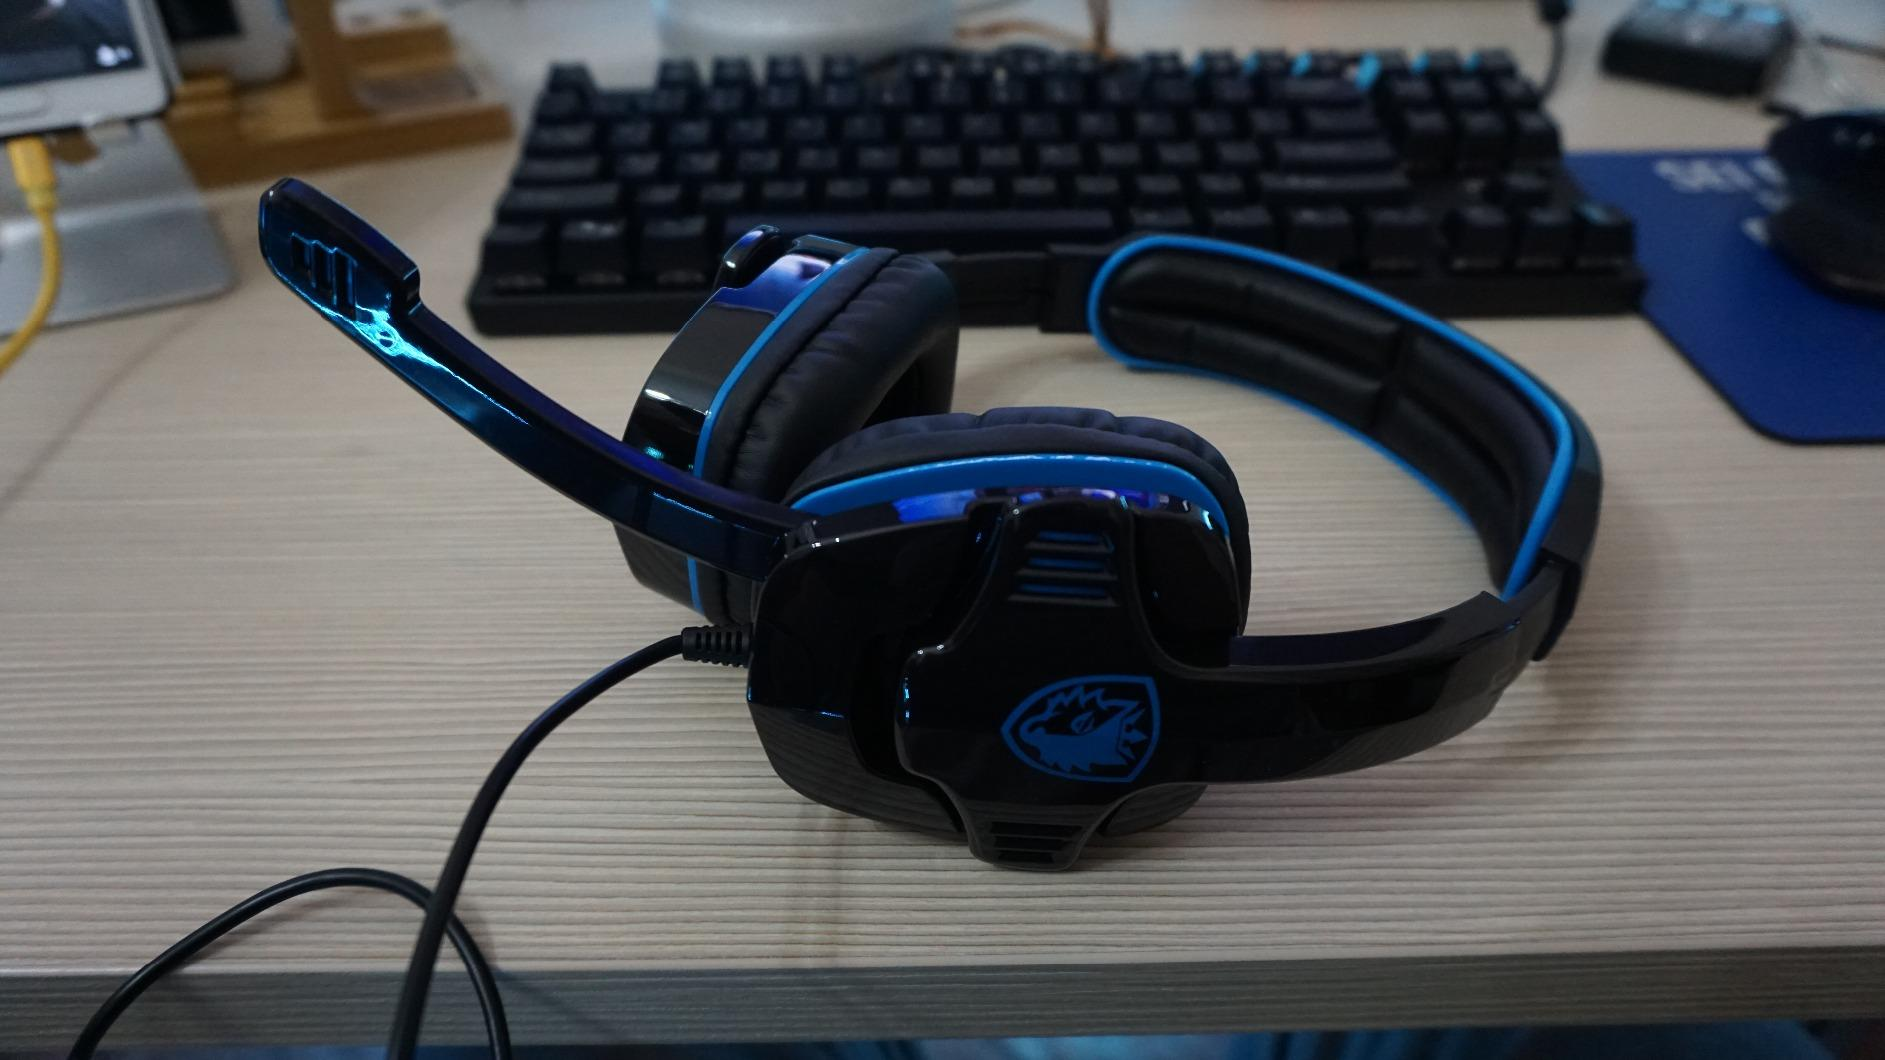 Sades Sa 708gt 35mm Gaming Headphone Sales Online Black Blue Tomtop 708 Headset Stereo Sound Is This Helpful 0